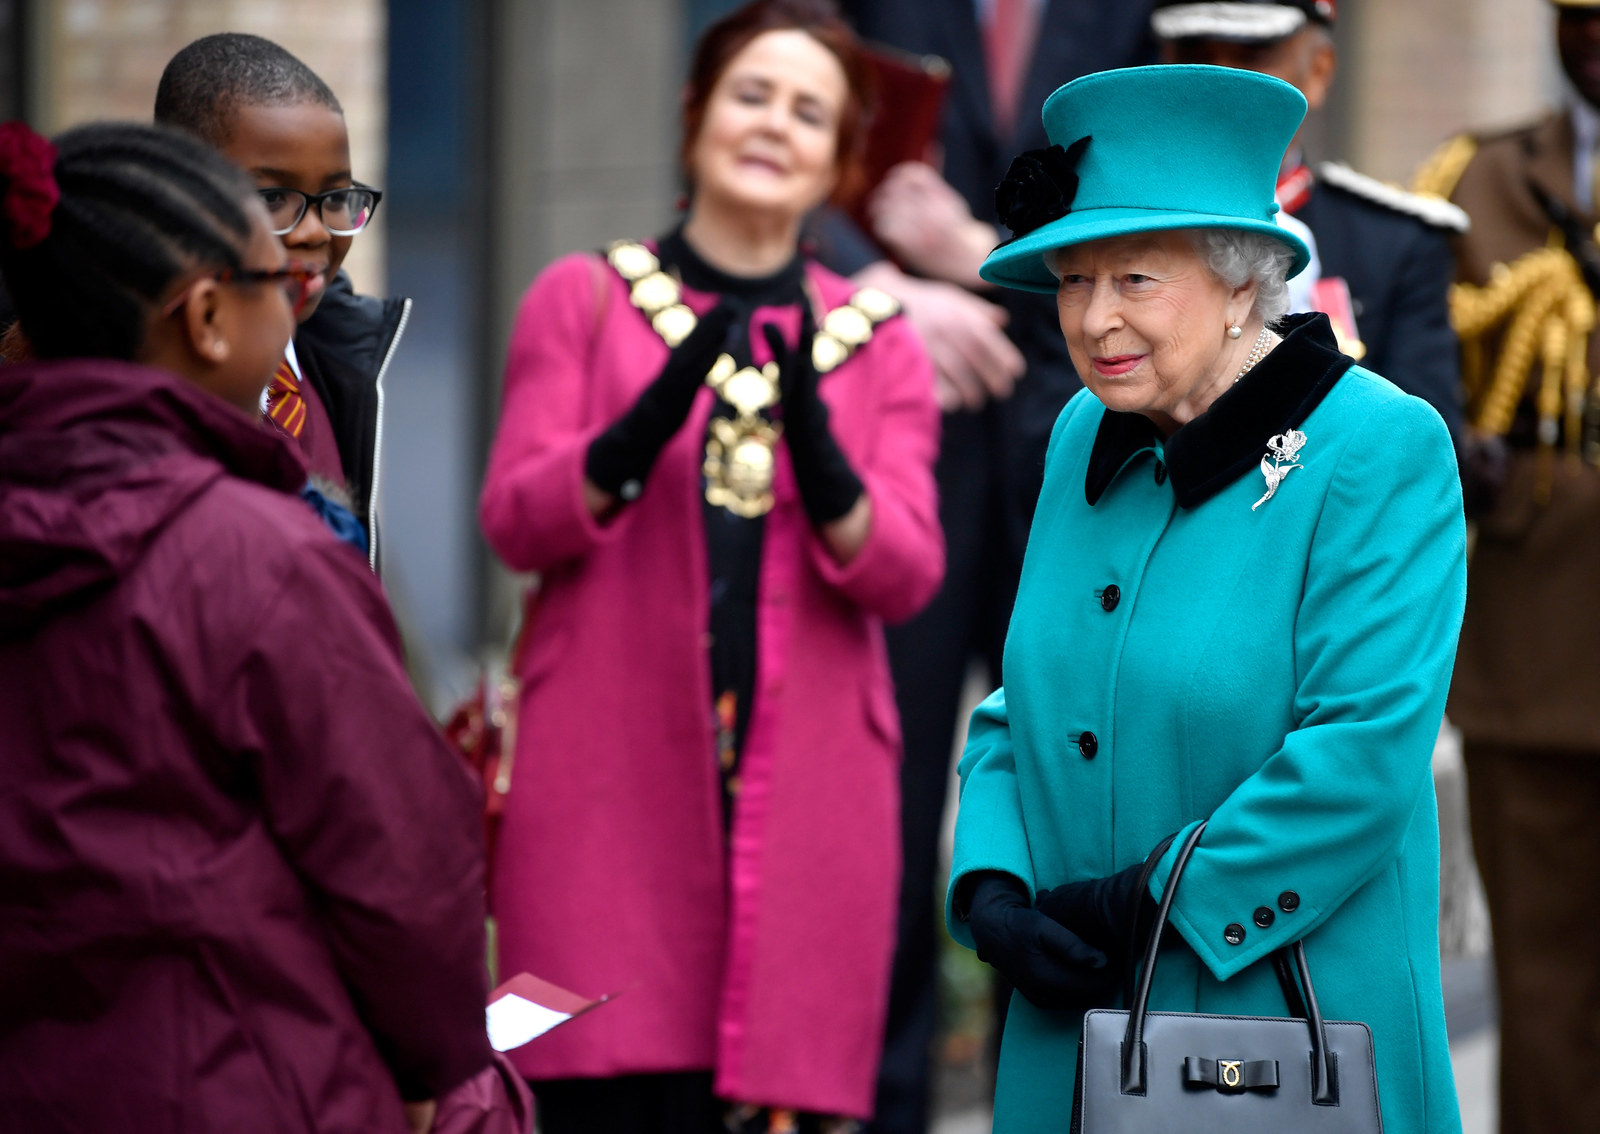 On Wednesday, Queen Elizabeth visited Coram, one of the oldest children's charities in the UK.